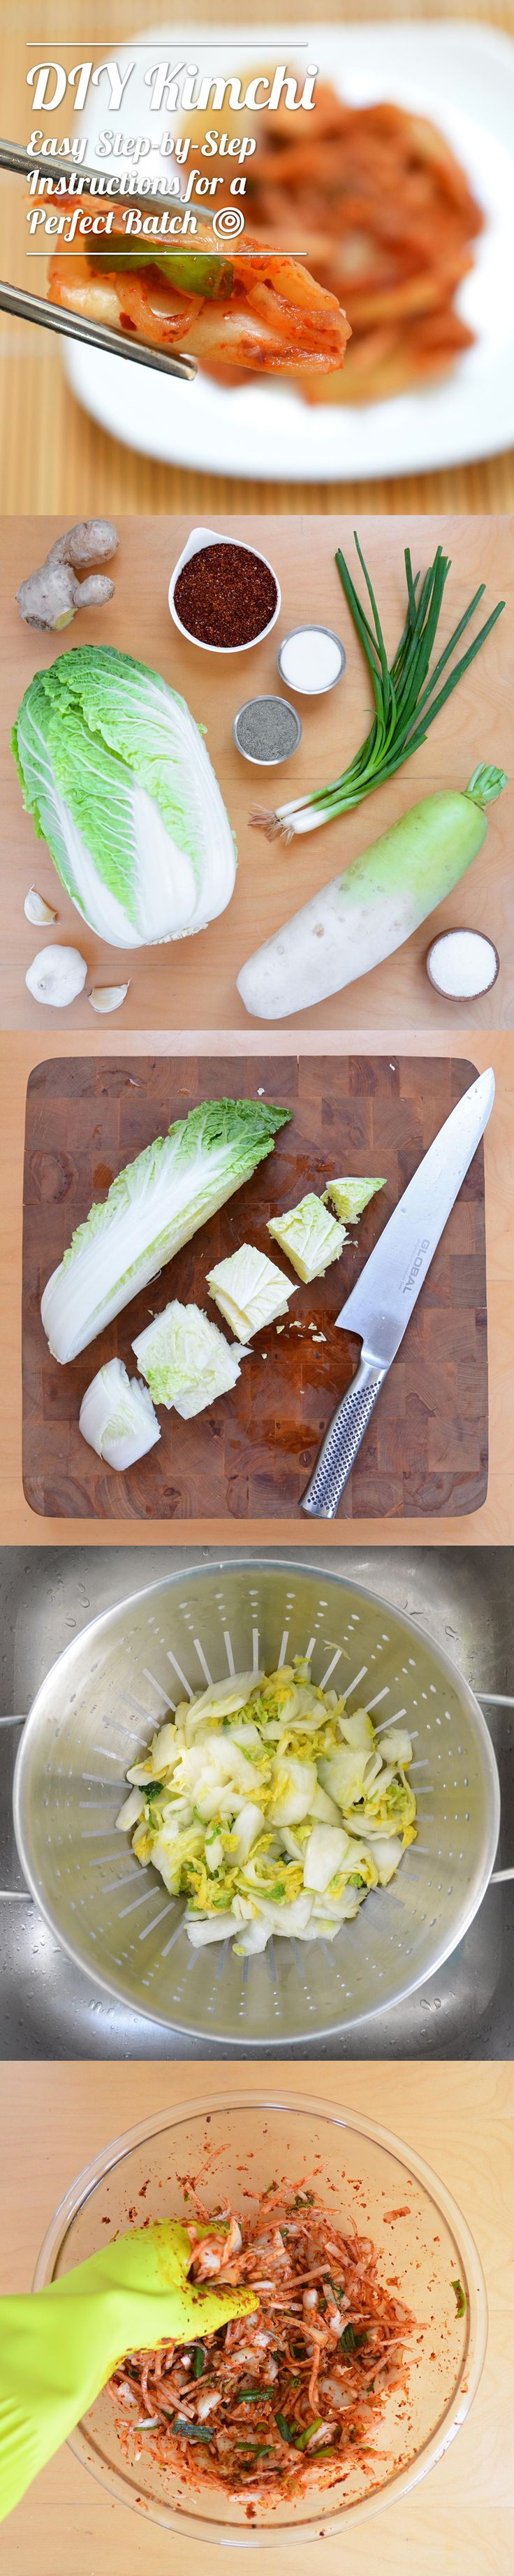 You'd never guess that making DIY Homemade Kimchi was so easy! One of my favorite easy recipes featuring napa cabbage.